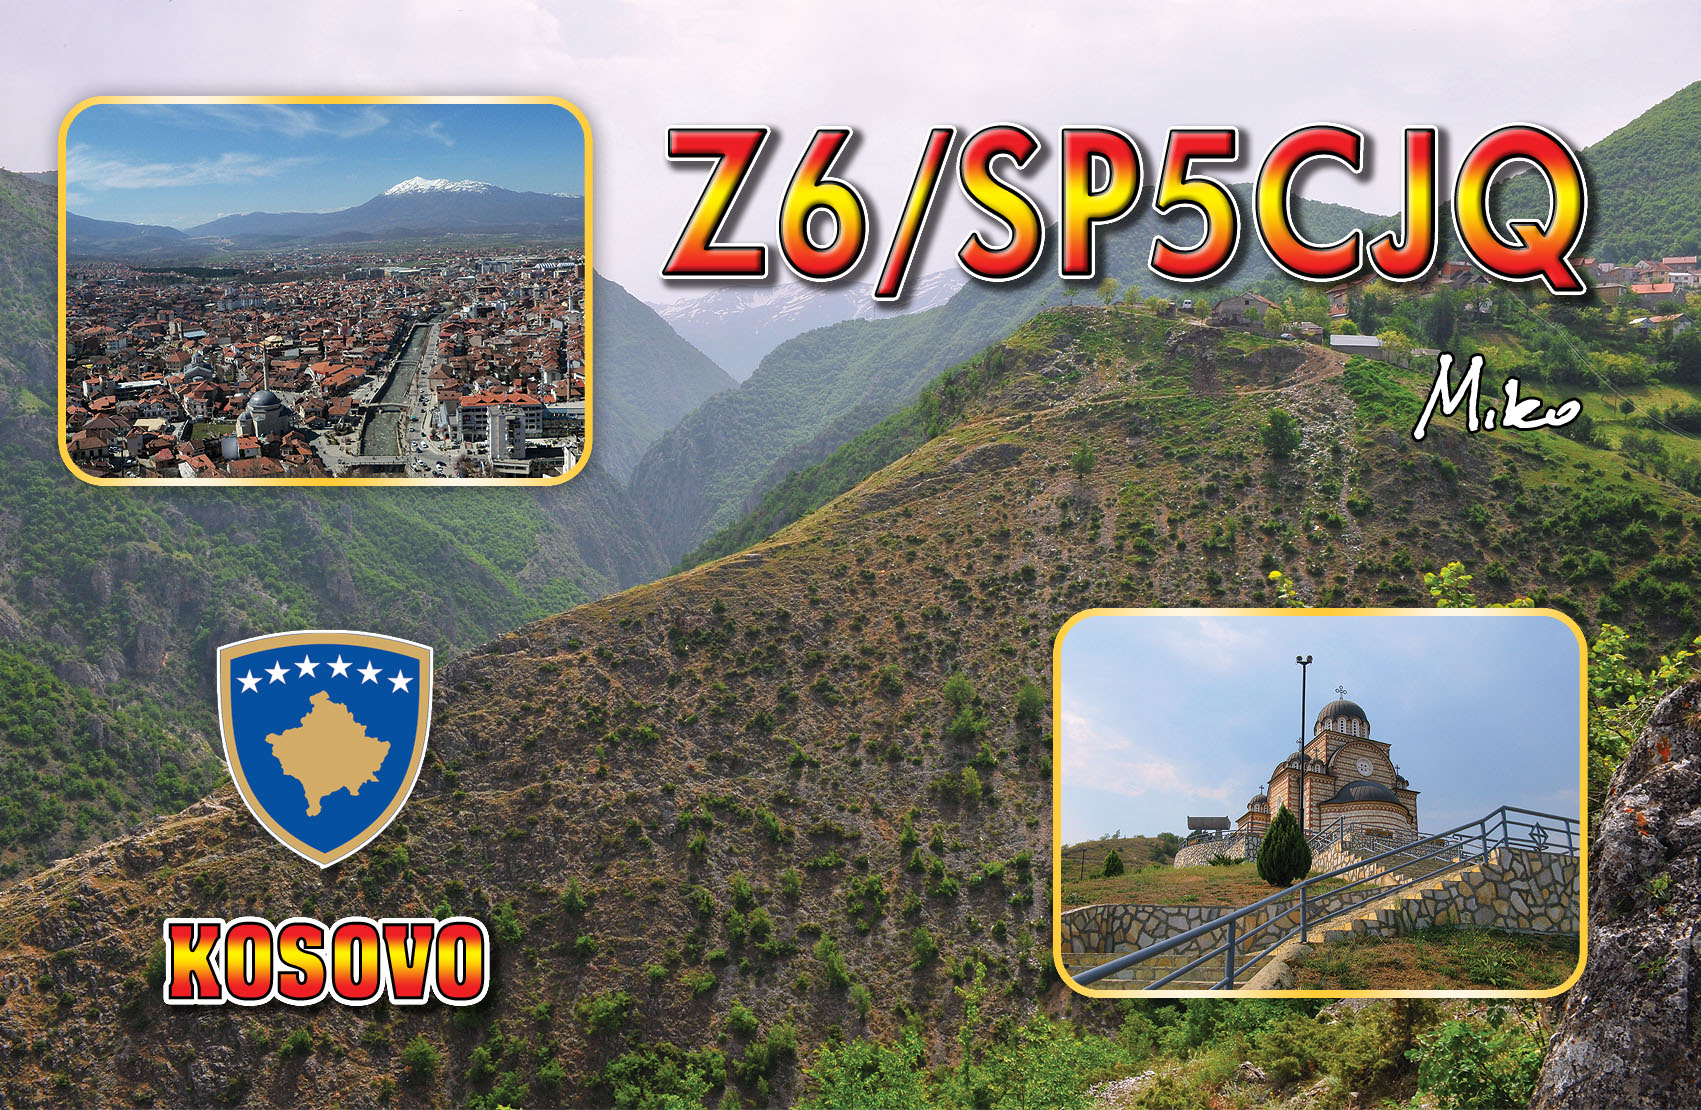 QSL image for SP5CJQ